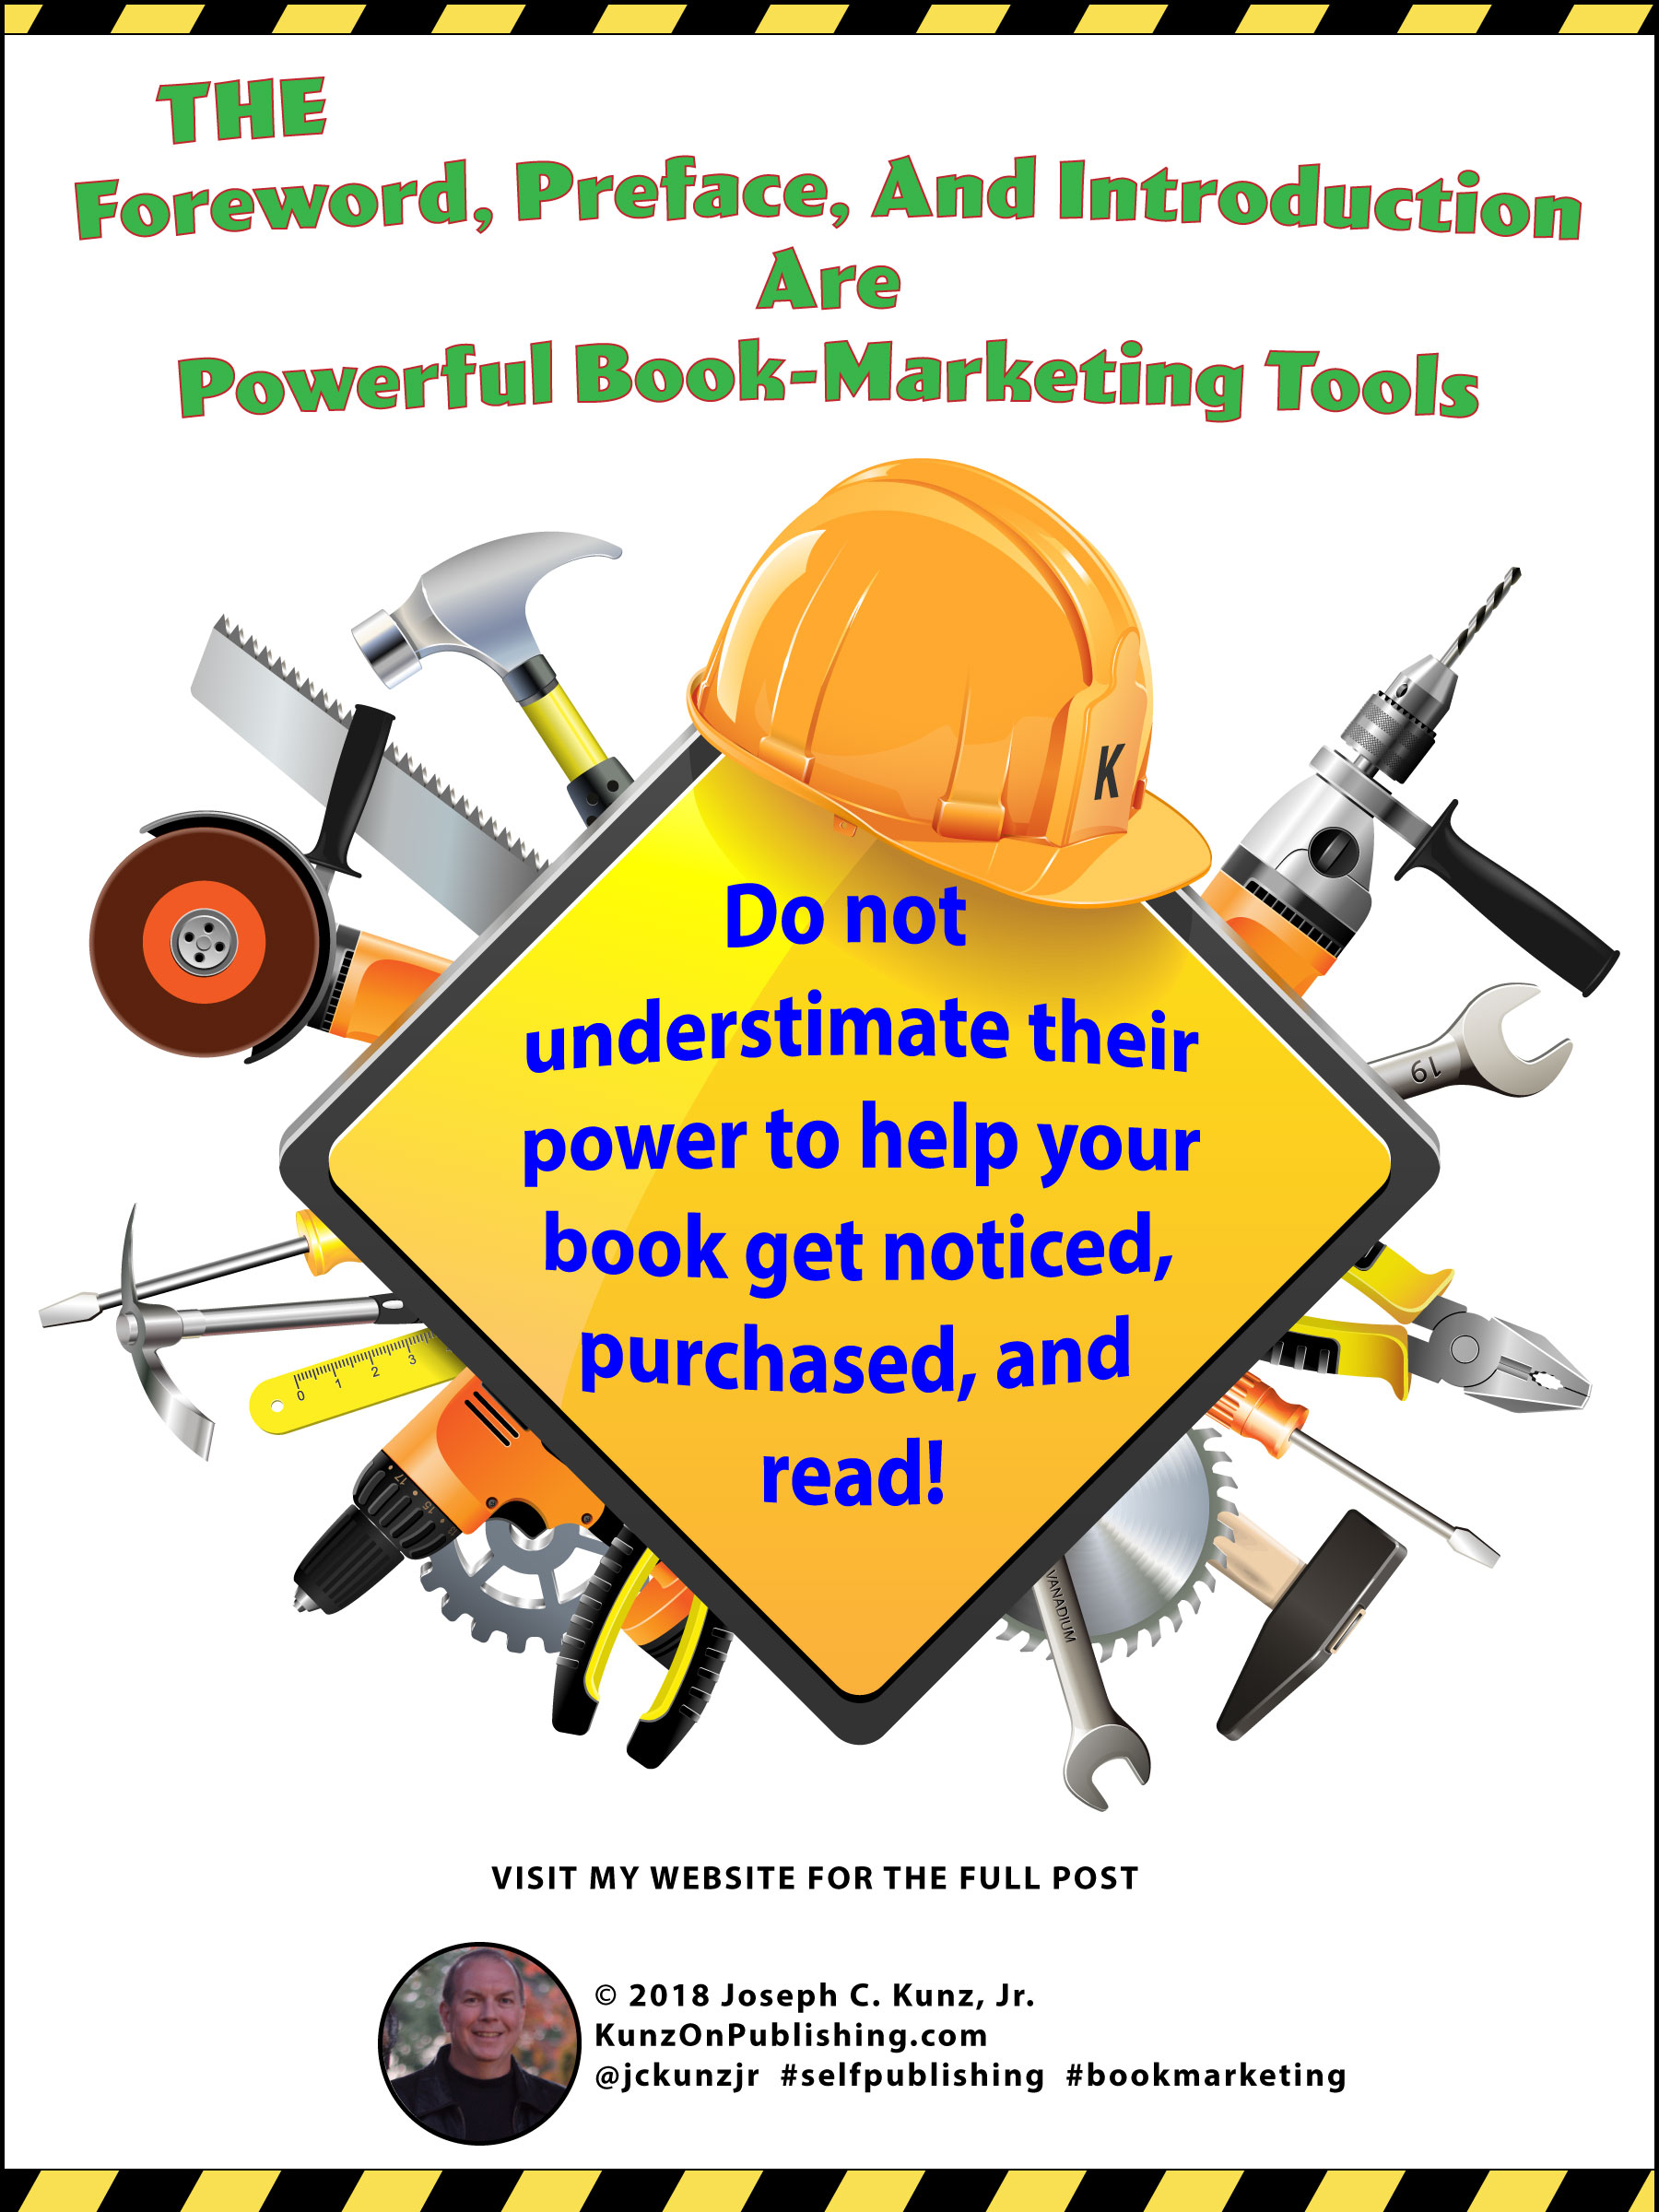 The Foreword, Preface, And Introduction As Powerful Marketing Tools (Infographic)